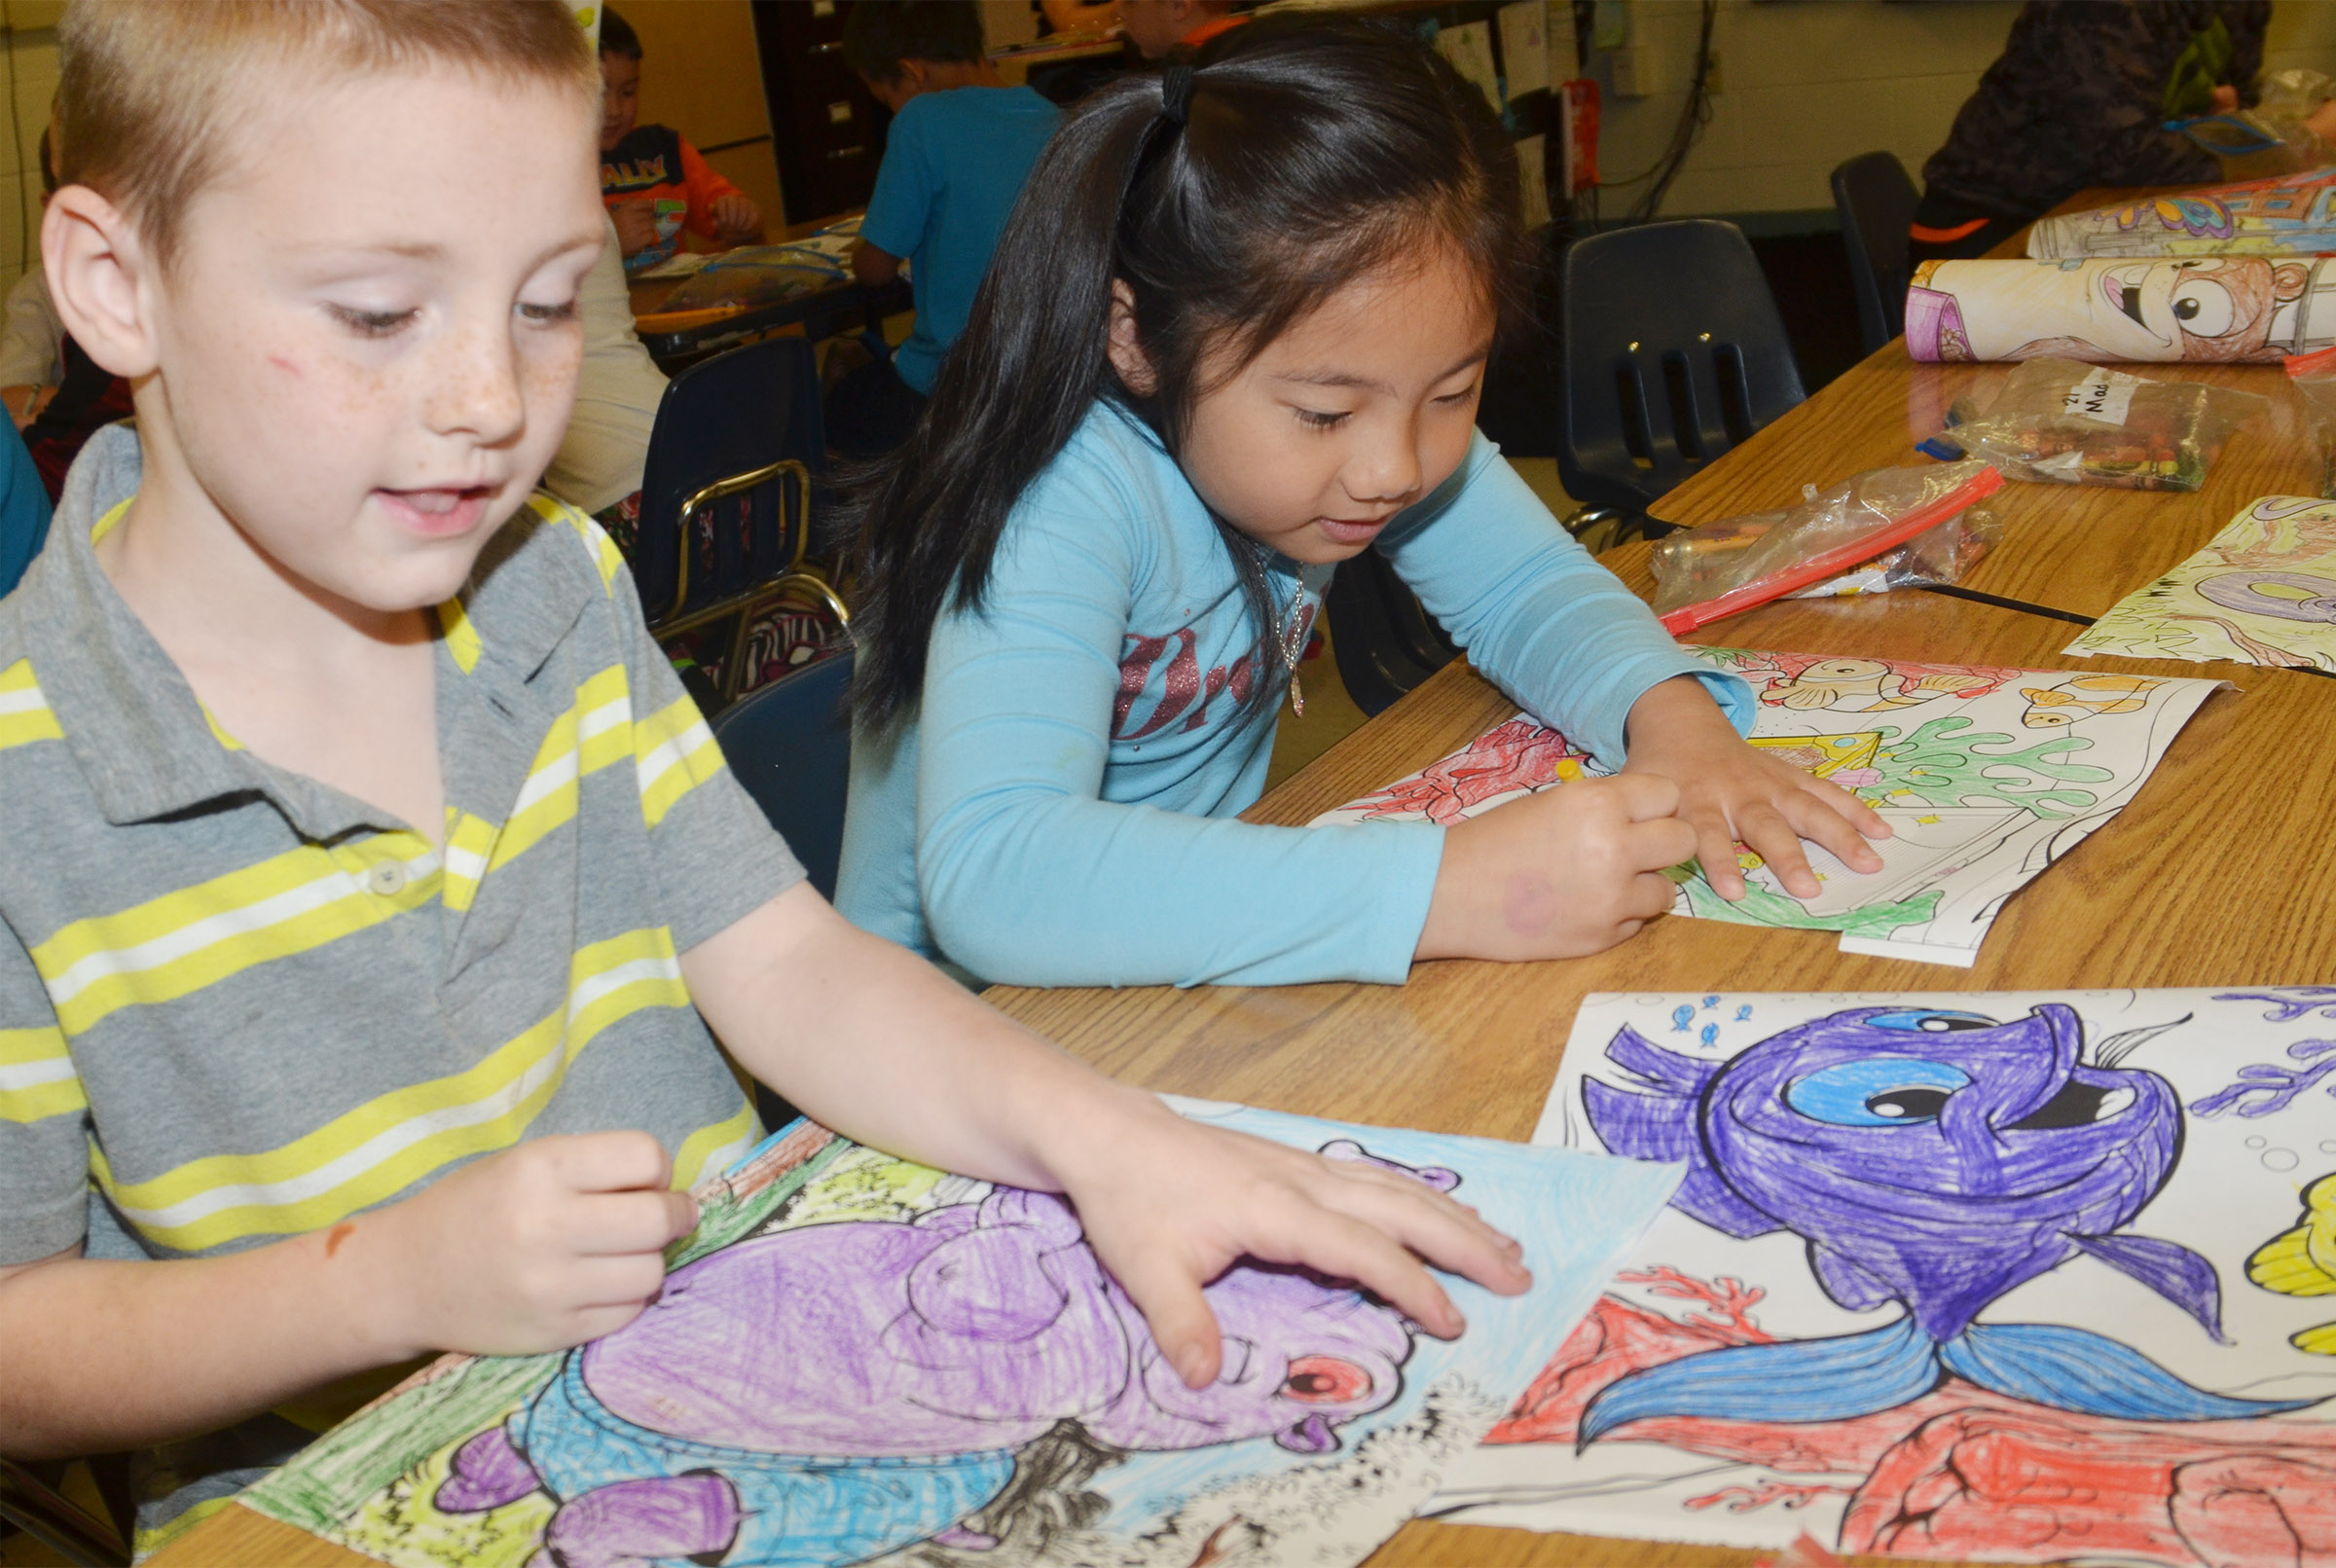 CES first-graders James Brunner, at left, and Tina Jiang color.